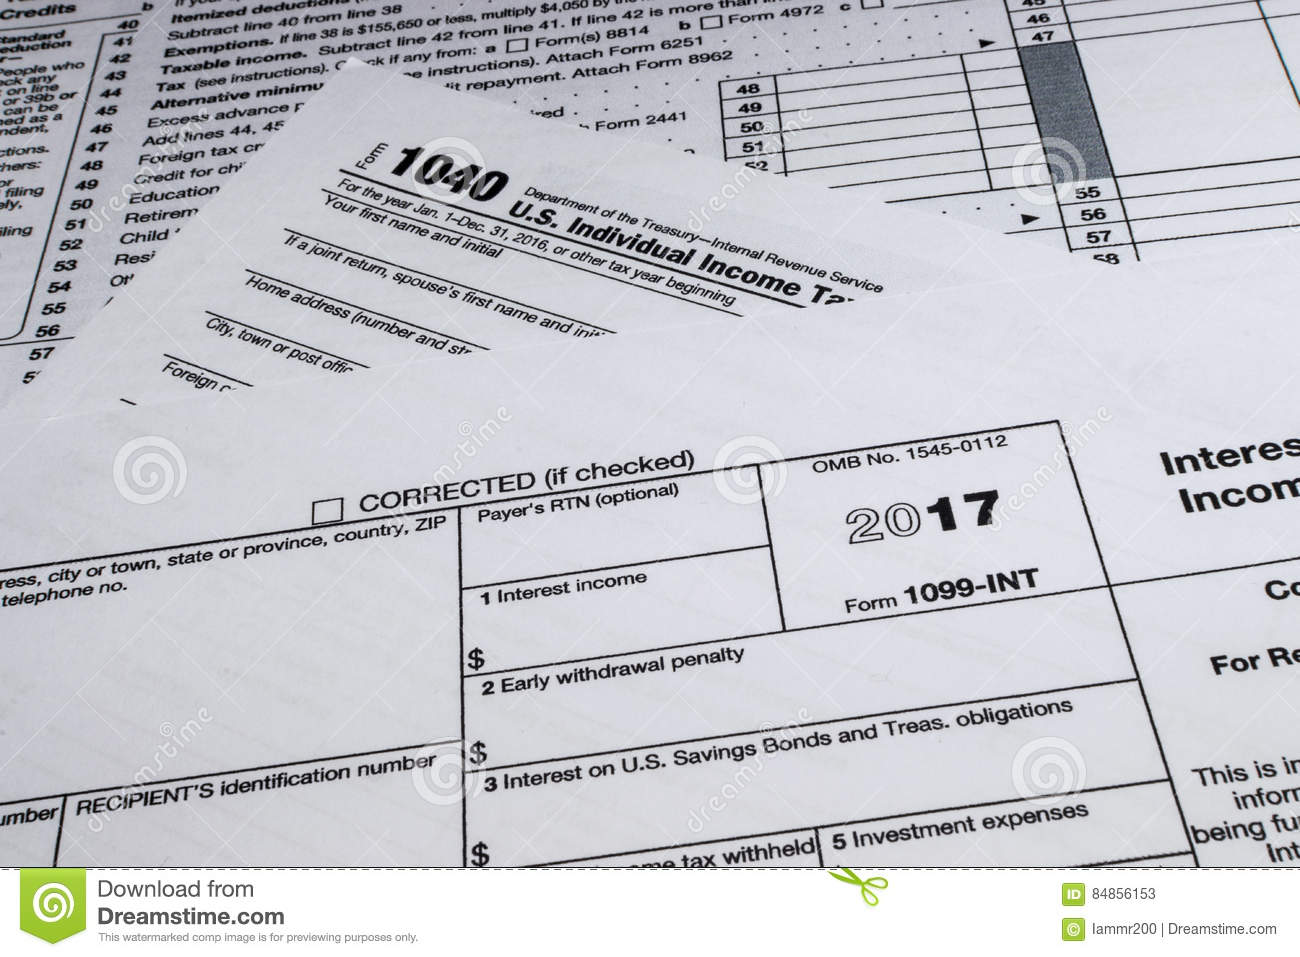 IRS Form 1099-INT: Interest Income Editorial Stock Photo - Image ...